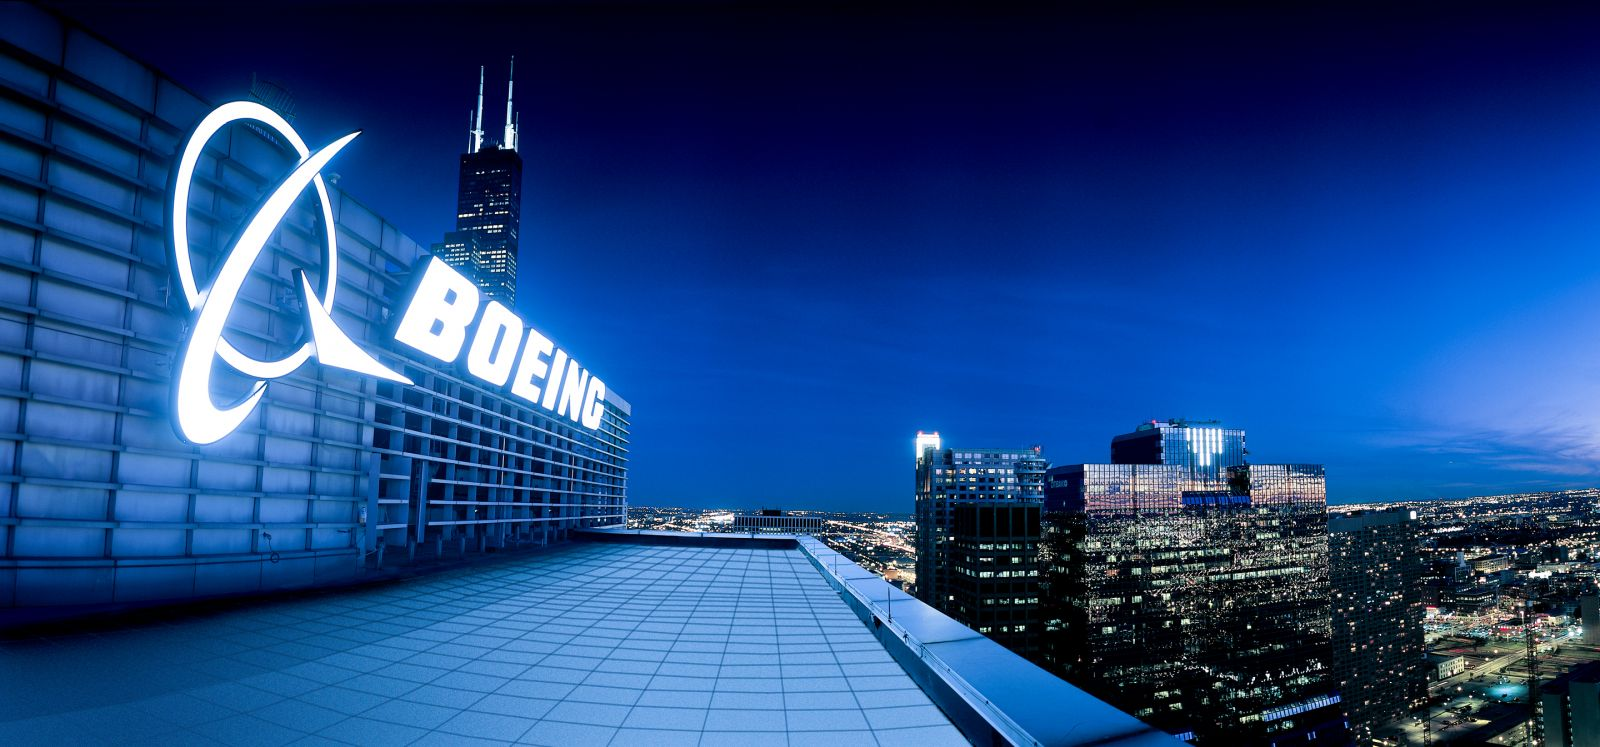 Boeing Co's headquarters is located in Chicago. (Photo/provided)